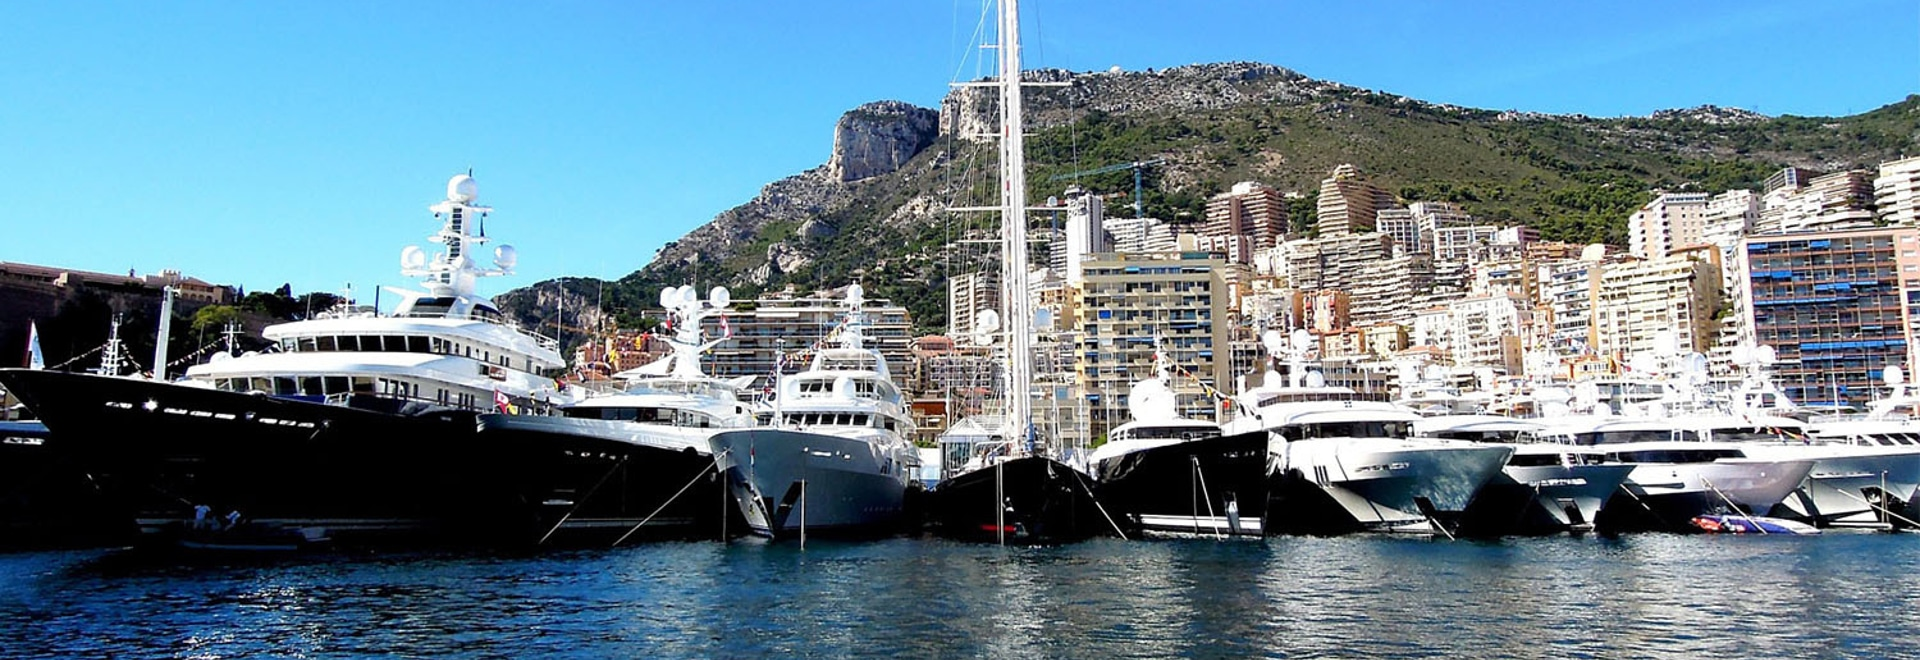 Monaco Yacht Show works to attract new superyacht owners